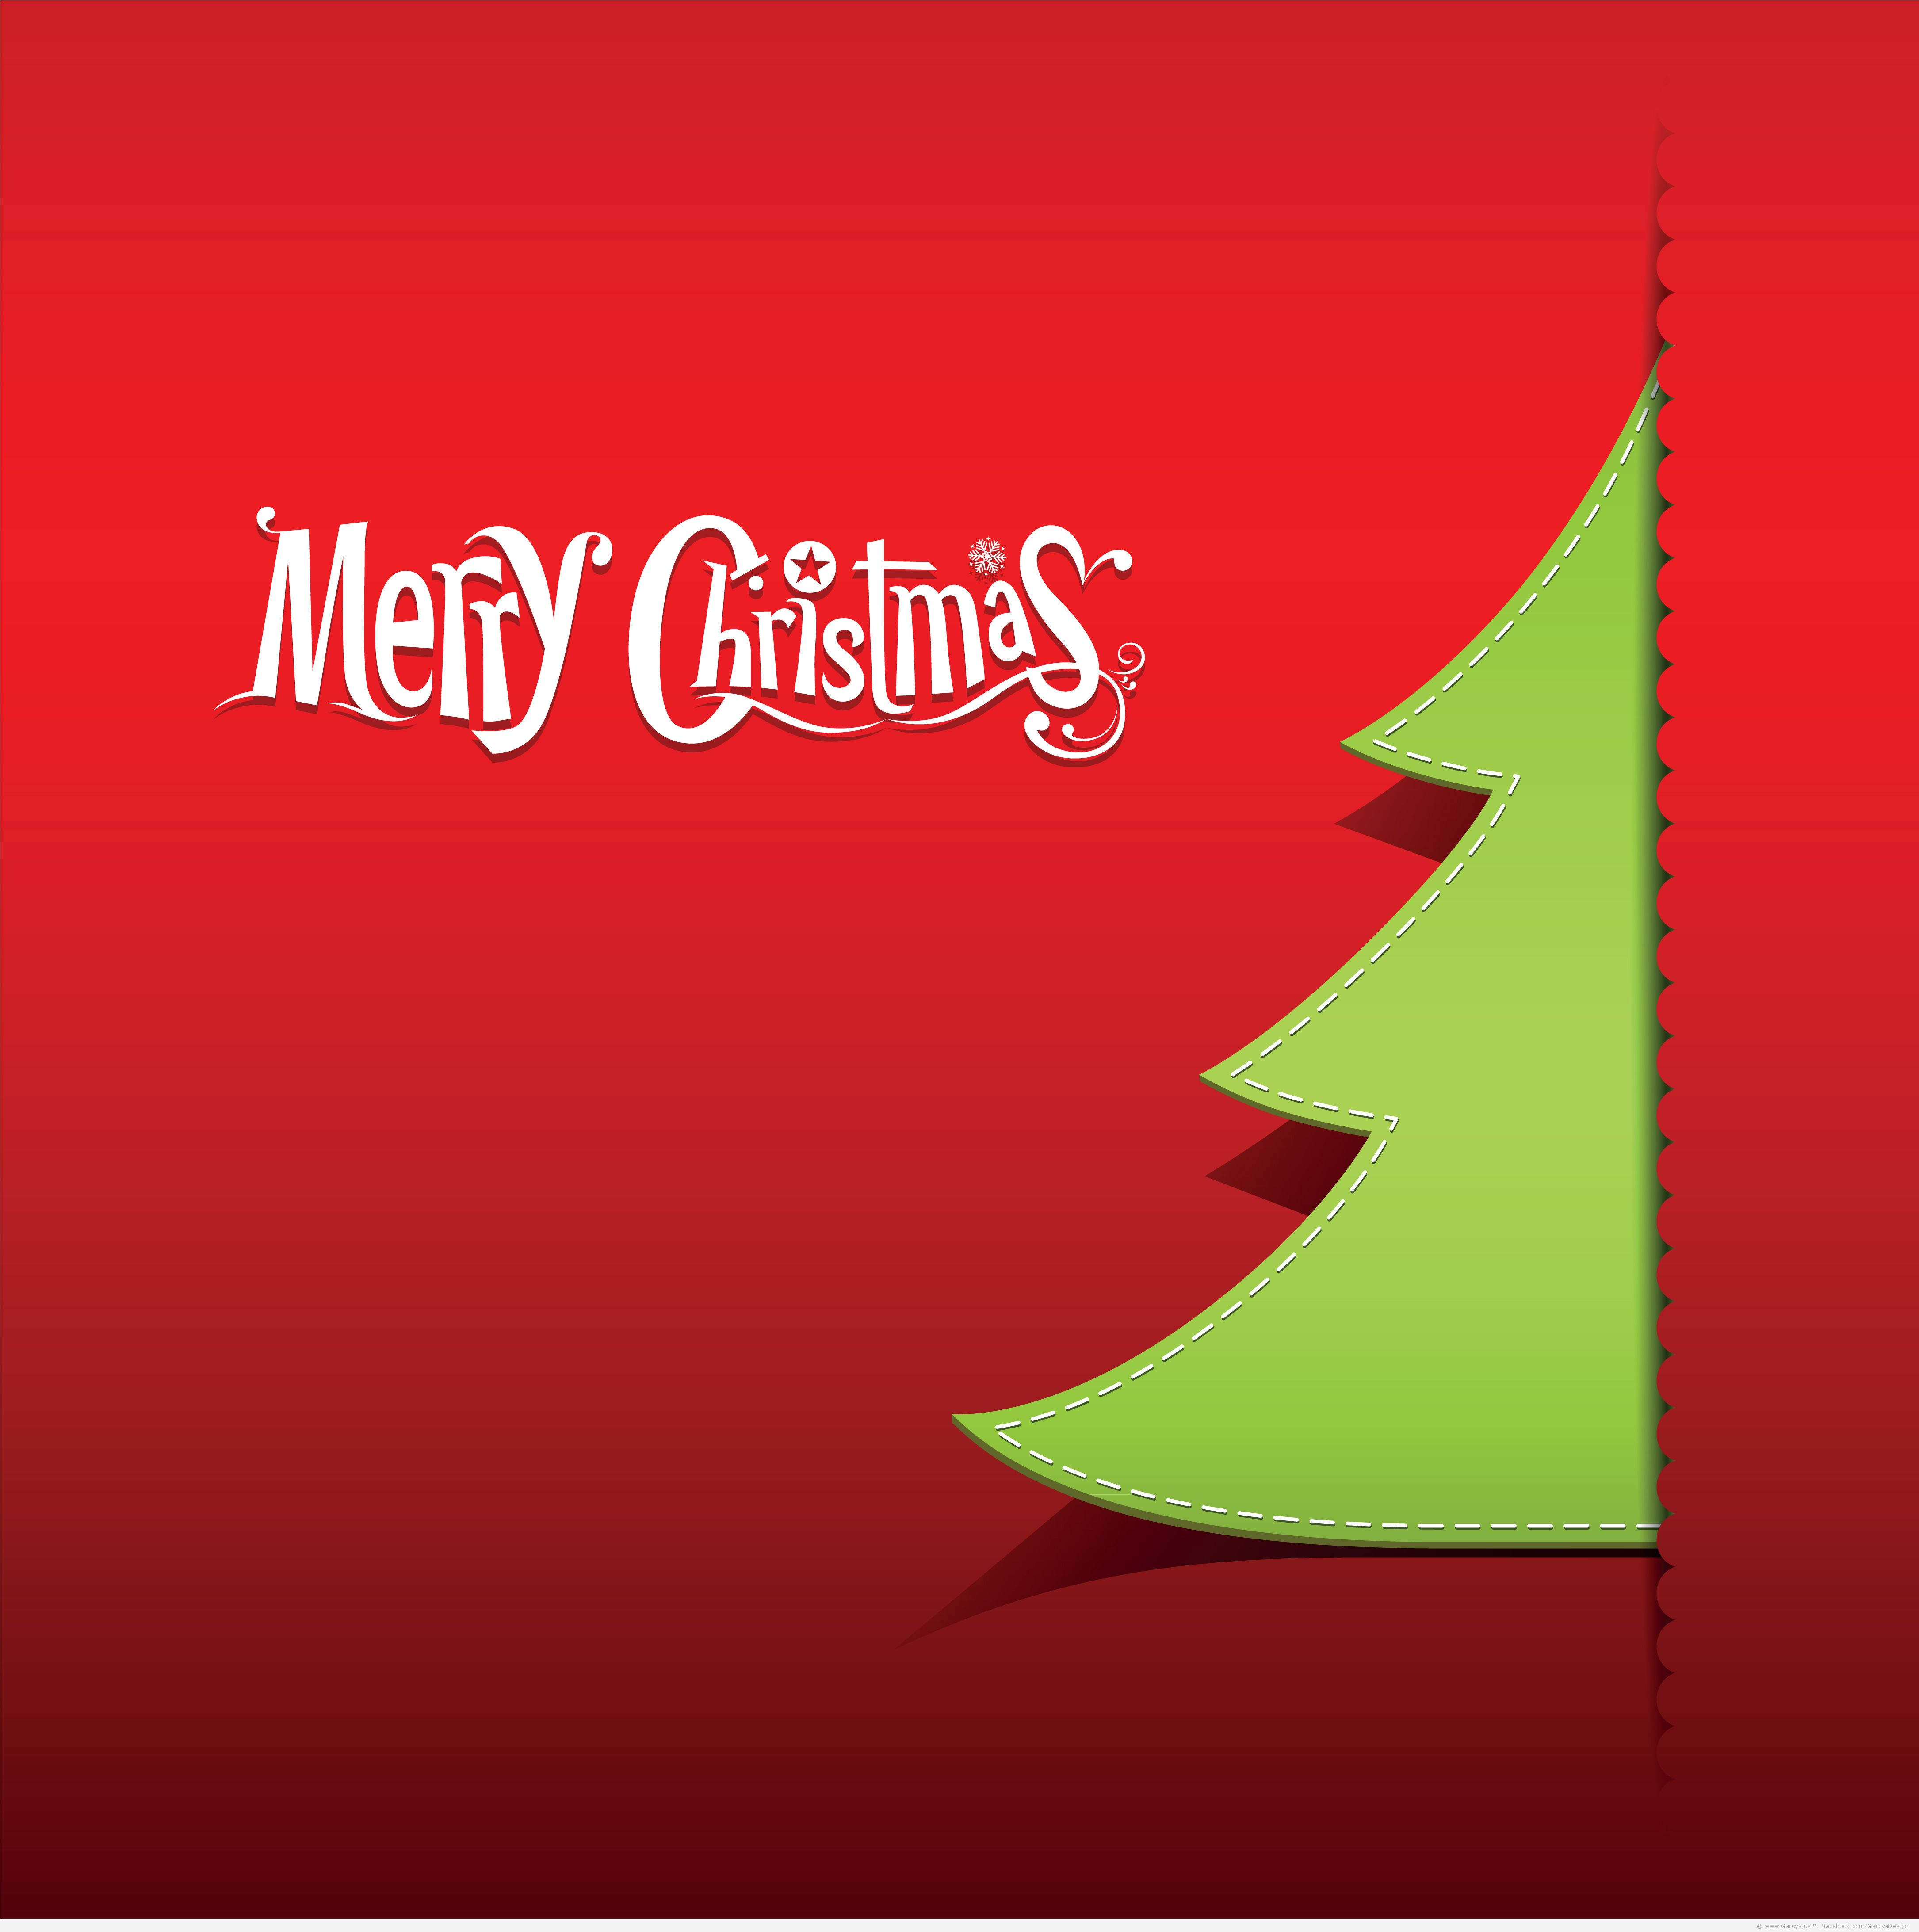 11 Merry Christmas Vectors Free Images Clackamas County